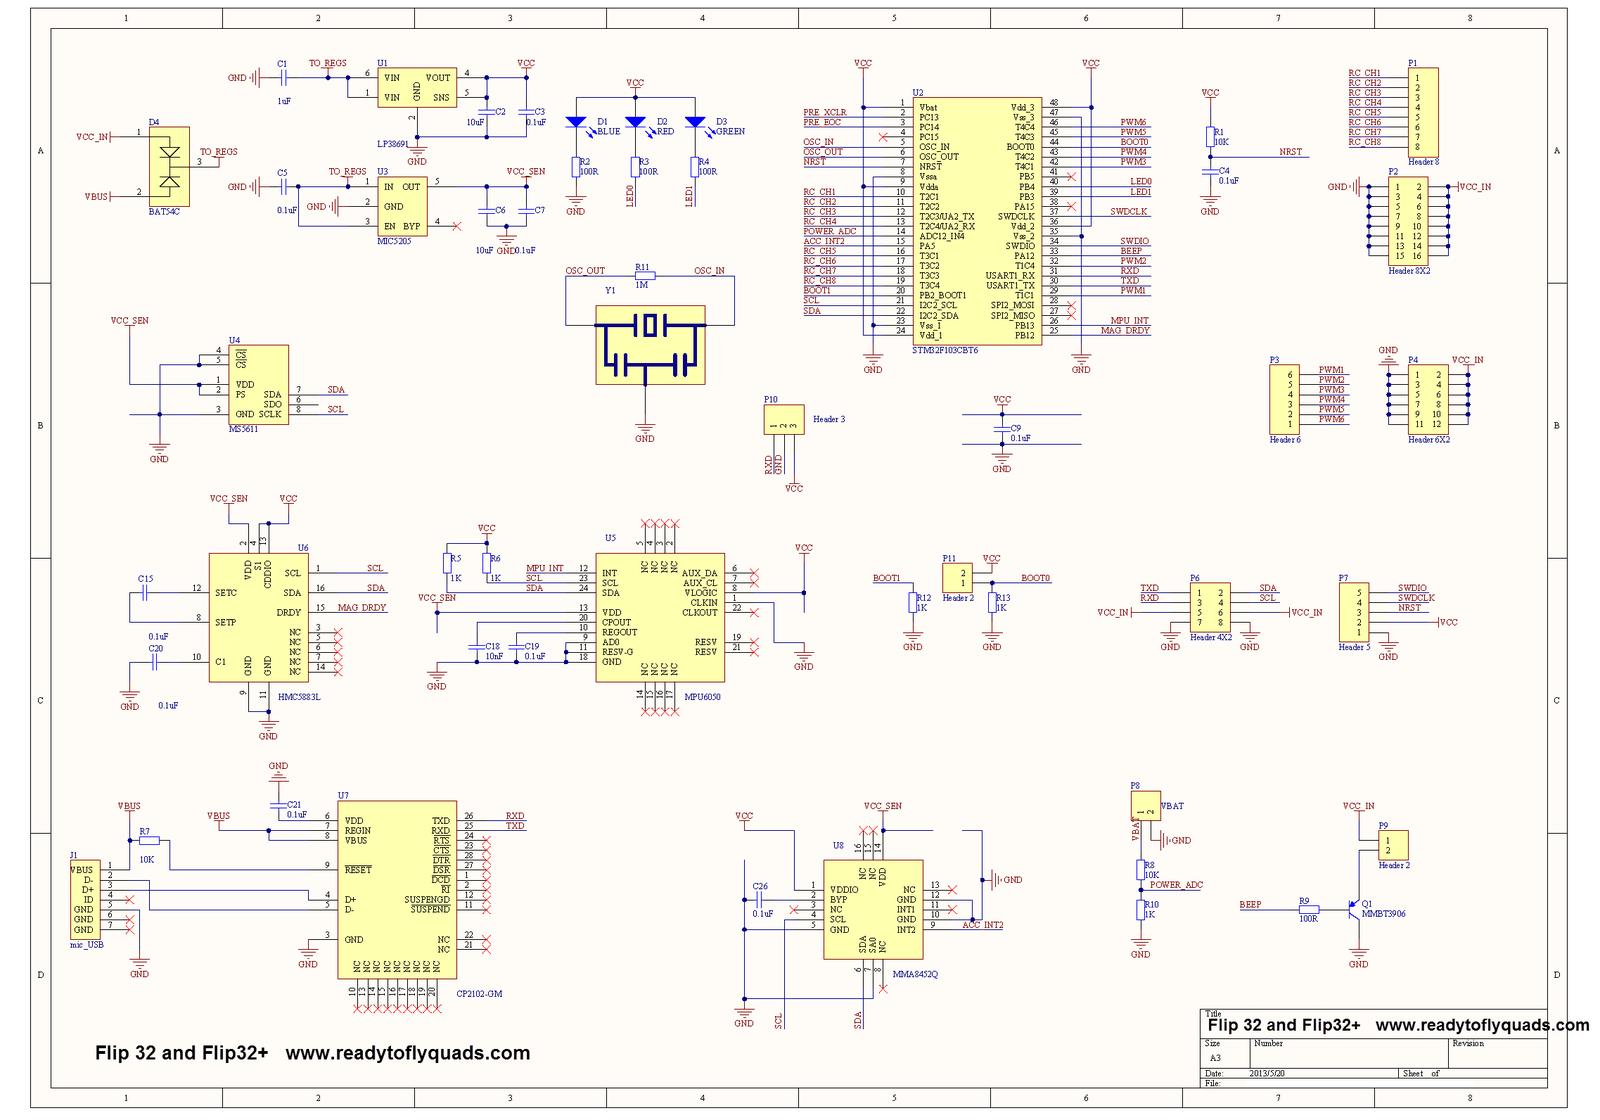 honda stereo wiring diagram with Cc3d Schematic on HONDA Car Radio Wiring Connector as well Xm Radio Wiring Diagram together with Nissan Sr20de Wiring Diagram moreover 93 Ford Explorer Stereo Wiring Diagram as well 2002 Honda Accord Wiring Diagram.